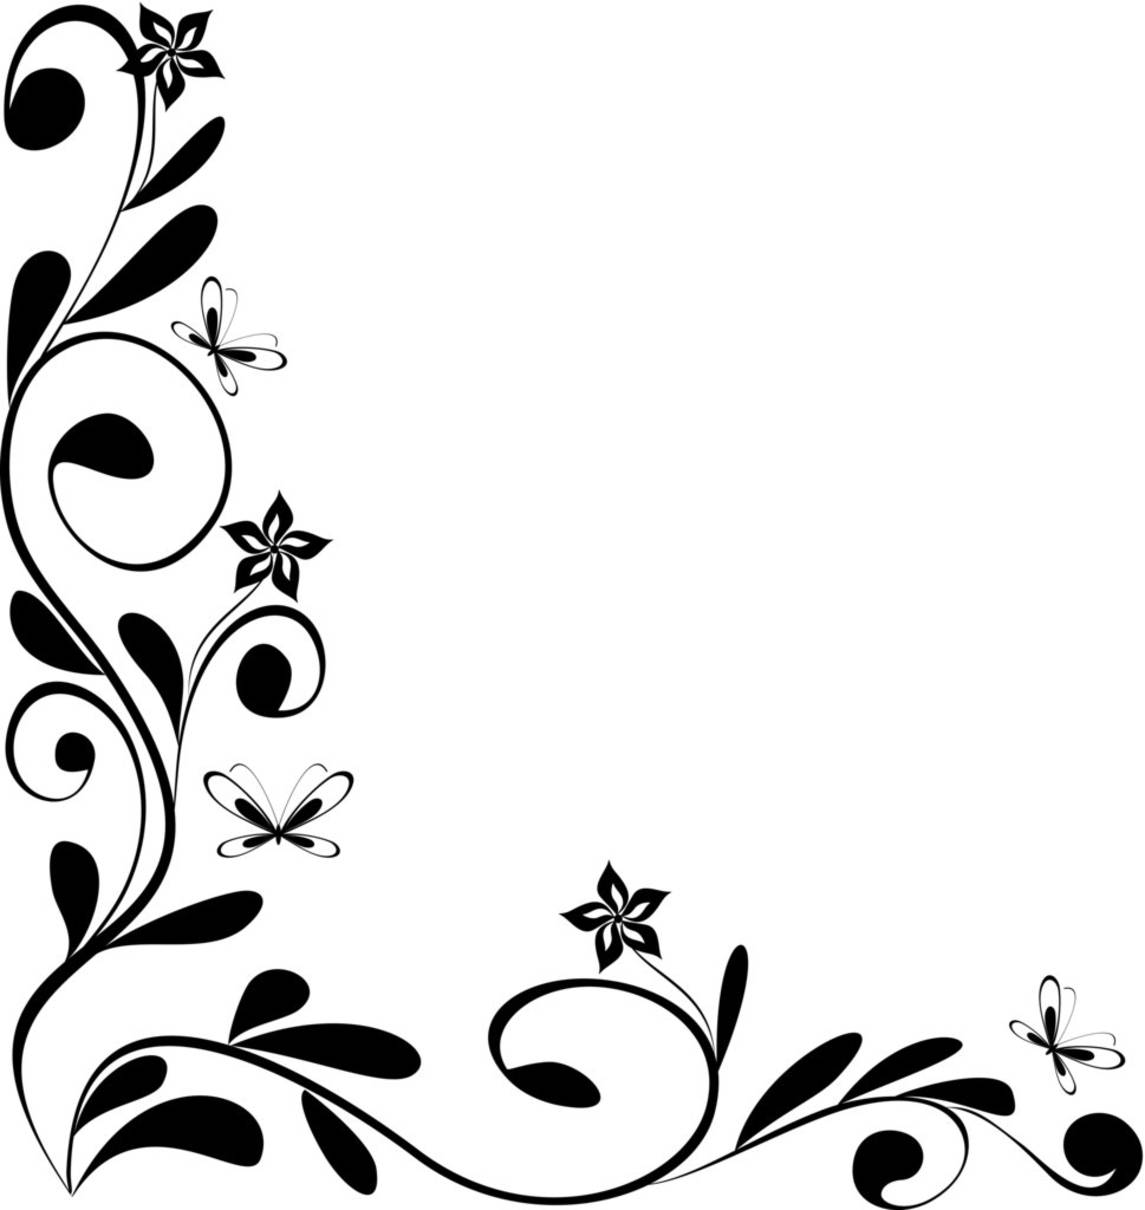 Simple Border Designs For School Projects - Cliparts.co